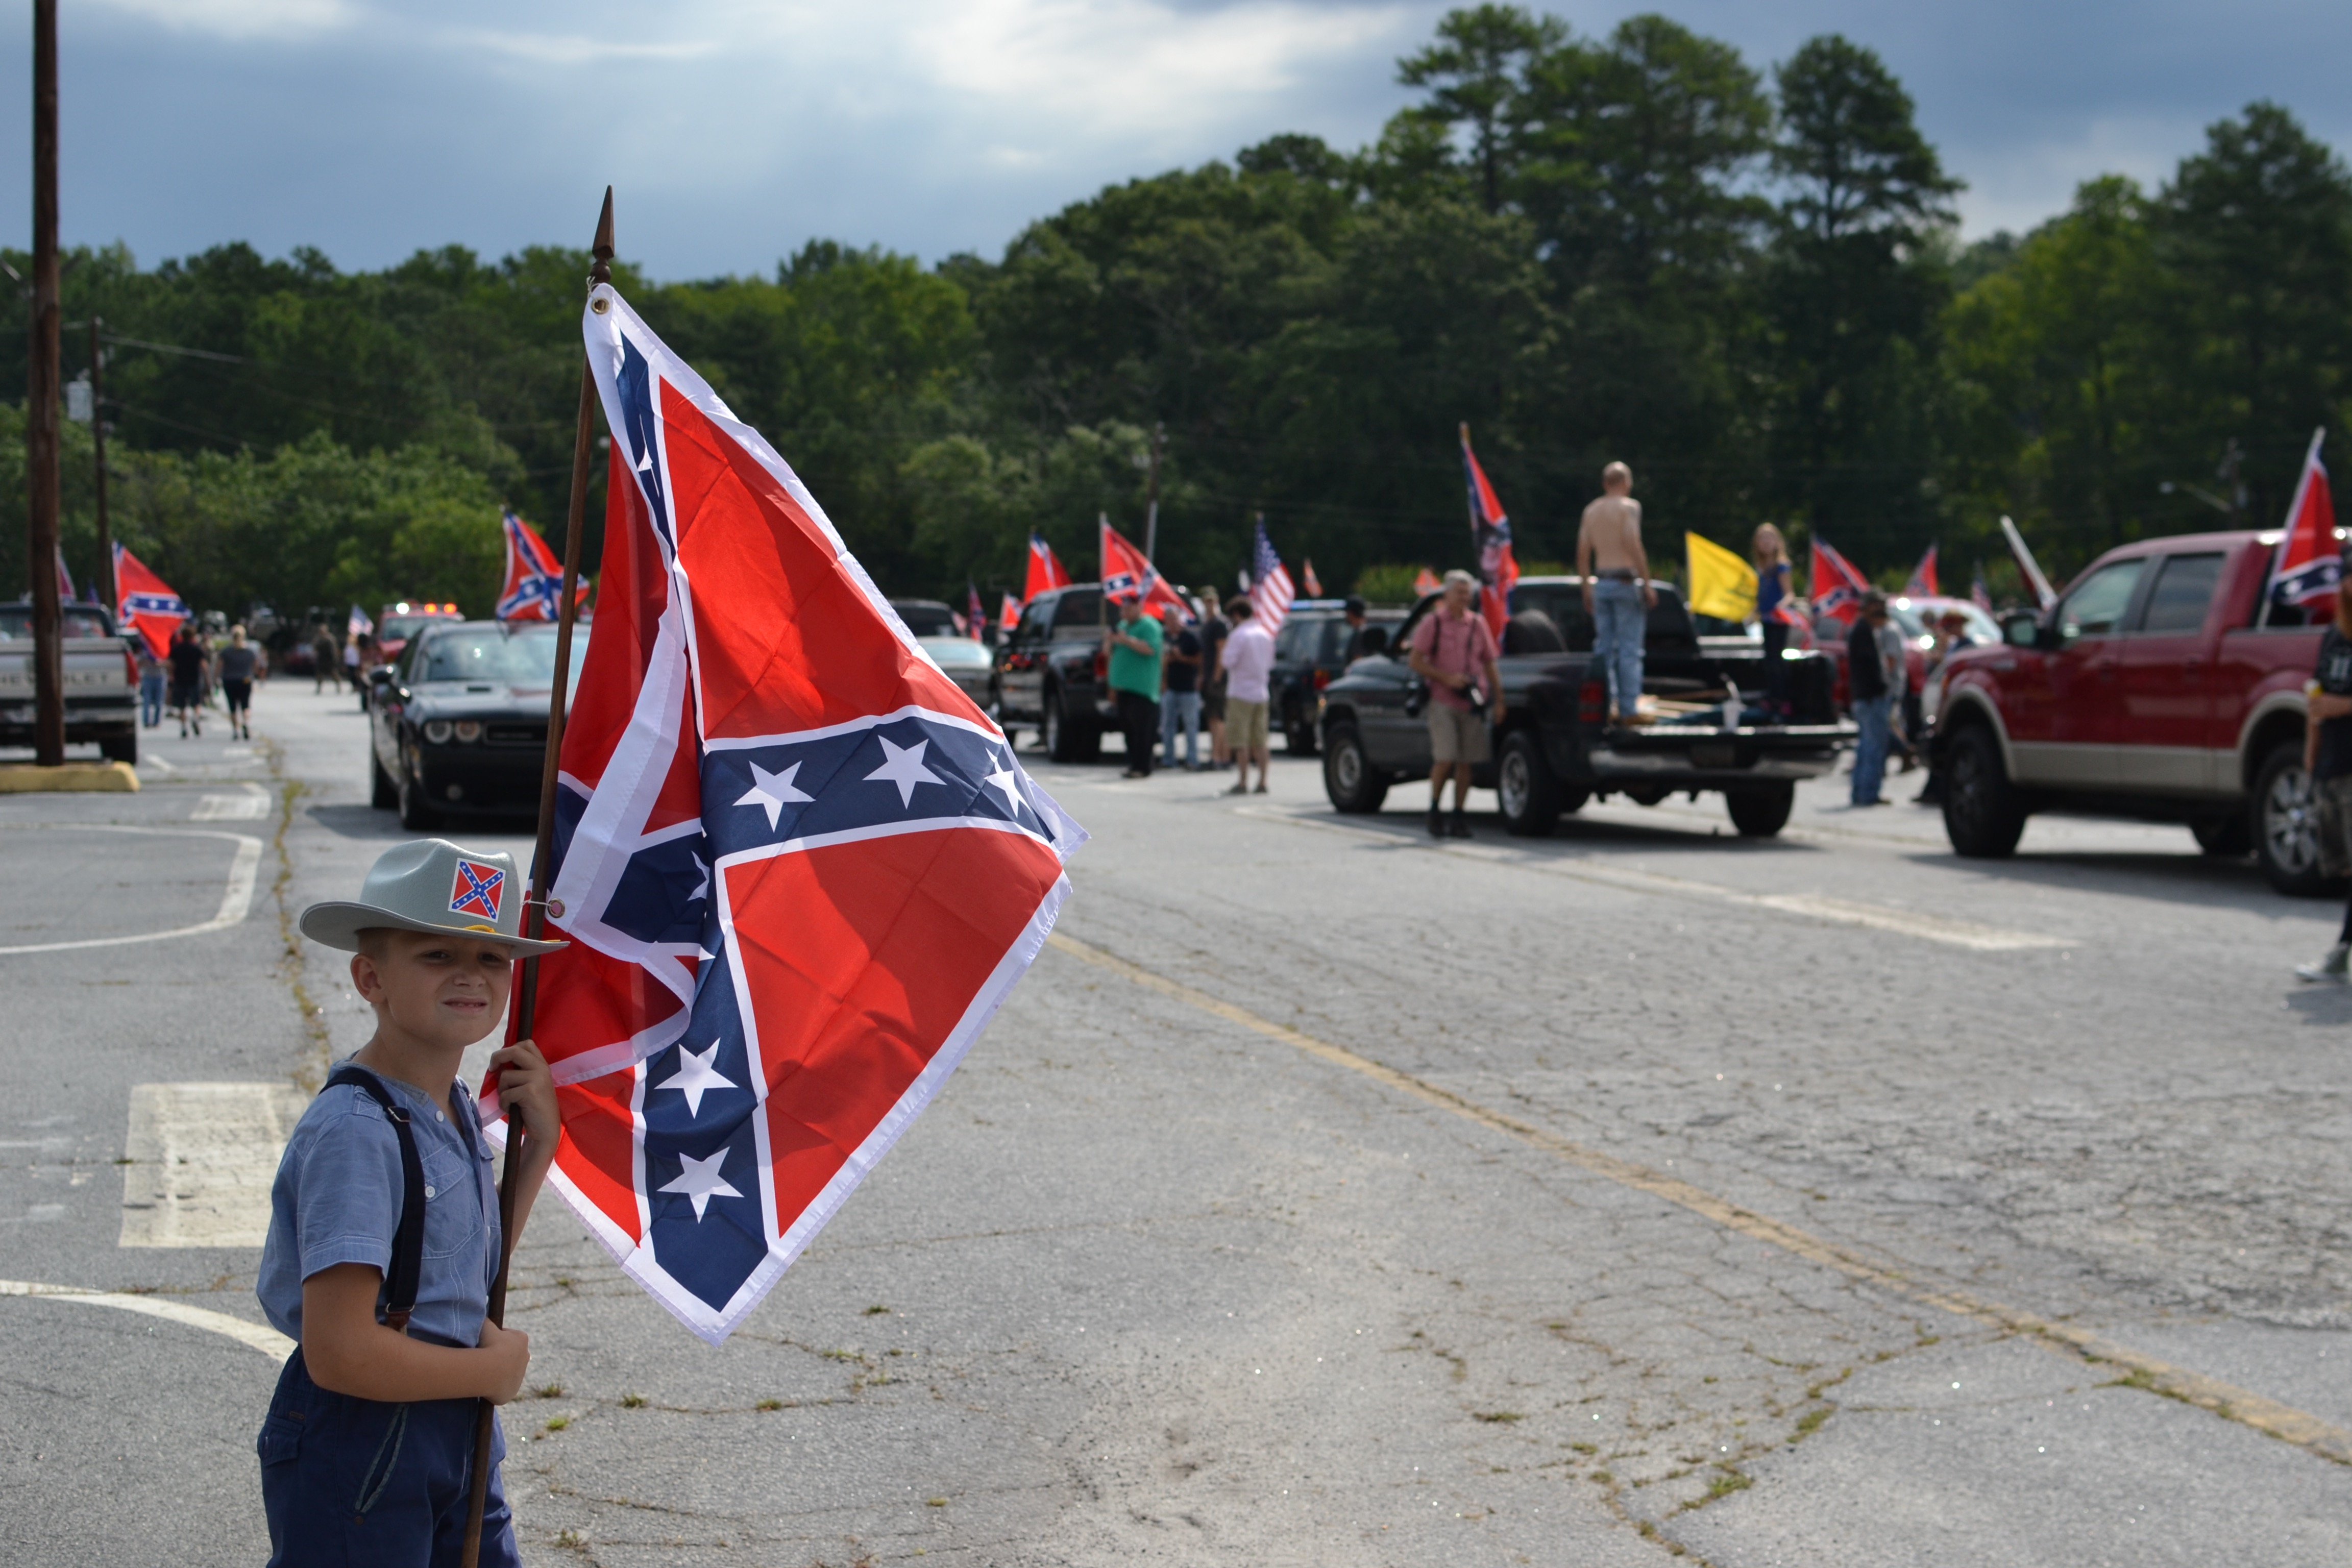 Confederate flag rally at Stone Mountain Park in Atlanta, Georgia